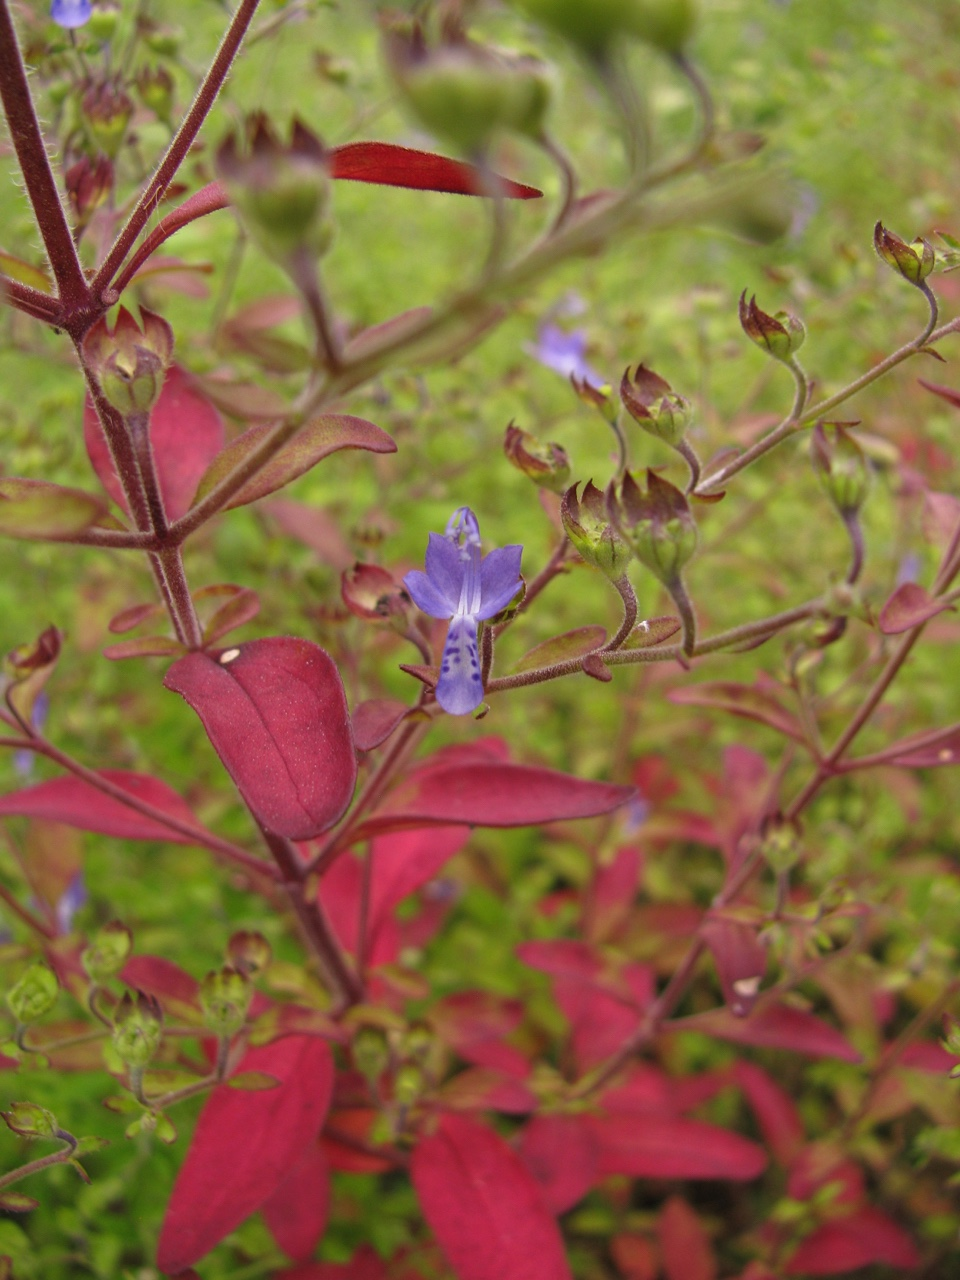 The Scientific Name is Trichostema dichotomum. You will likely hear them called Forked Bluecurls, Common Blue Curls, Blue-curls. This picture shows the Beautiful Fall color of Trichostema dichotomum